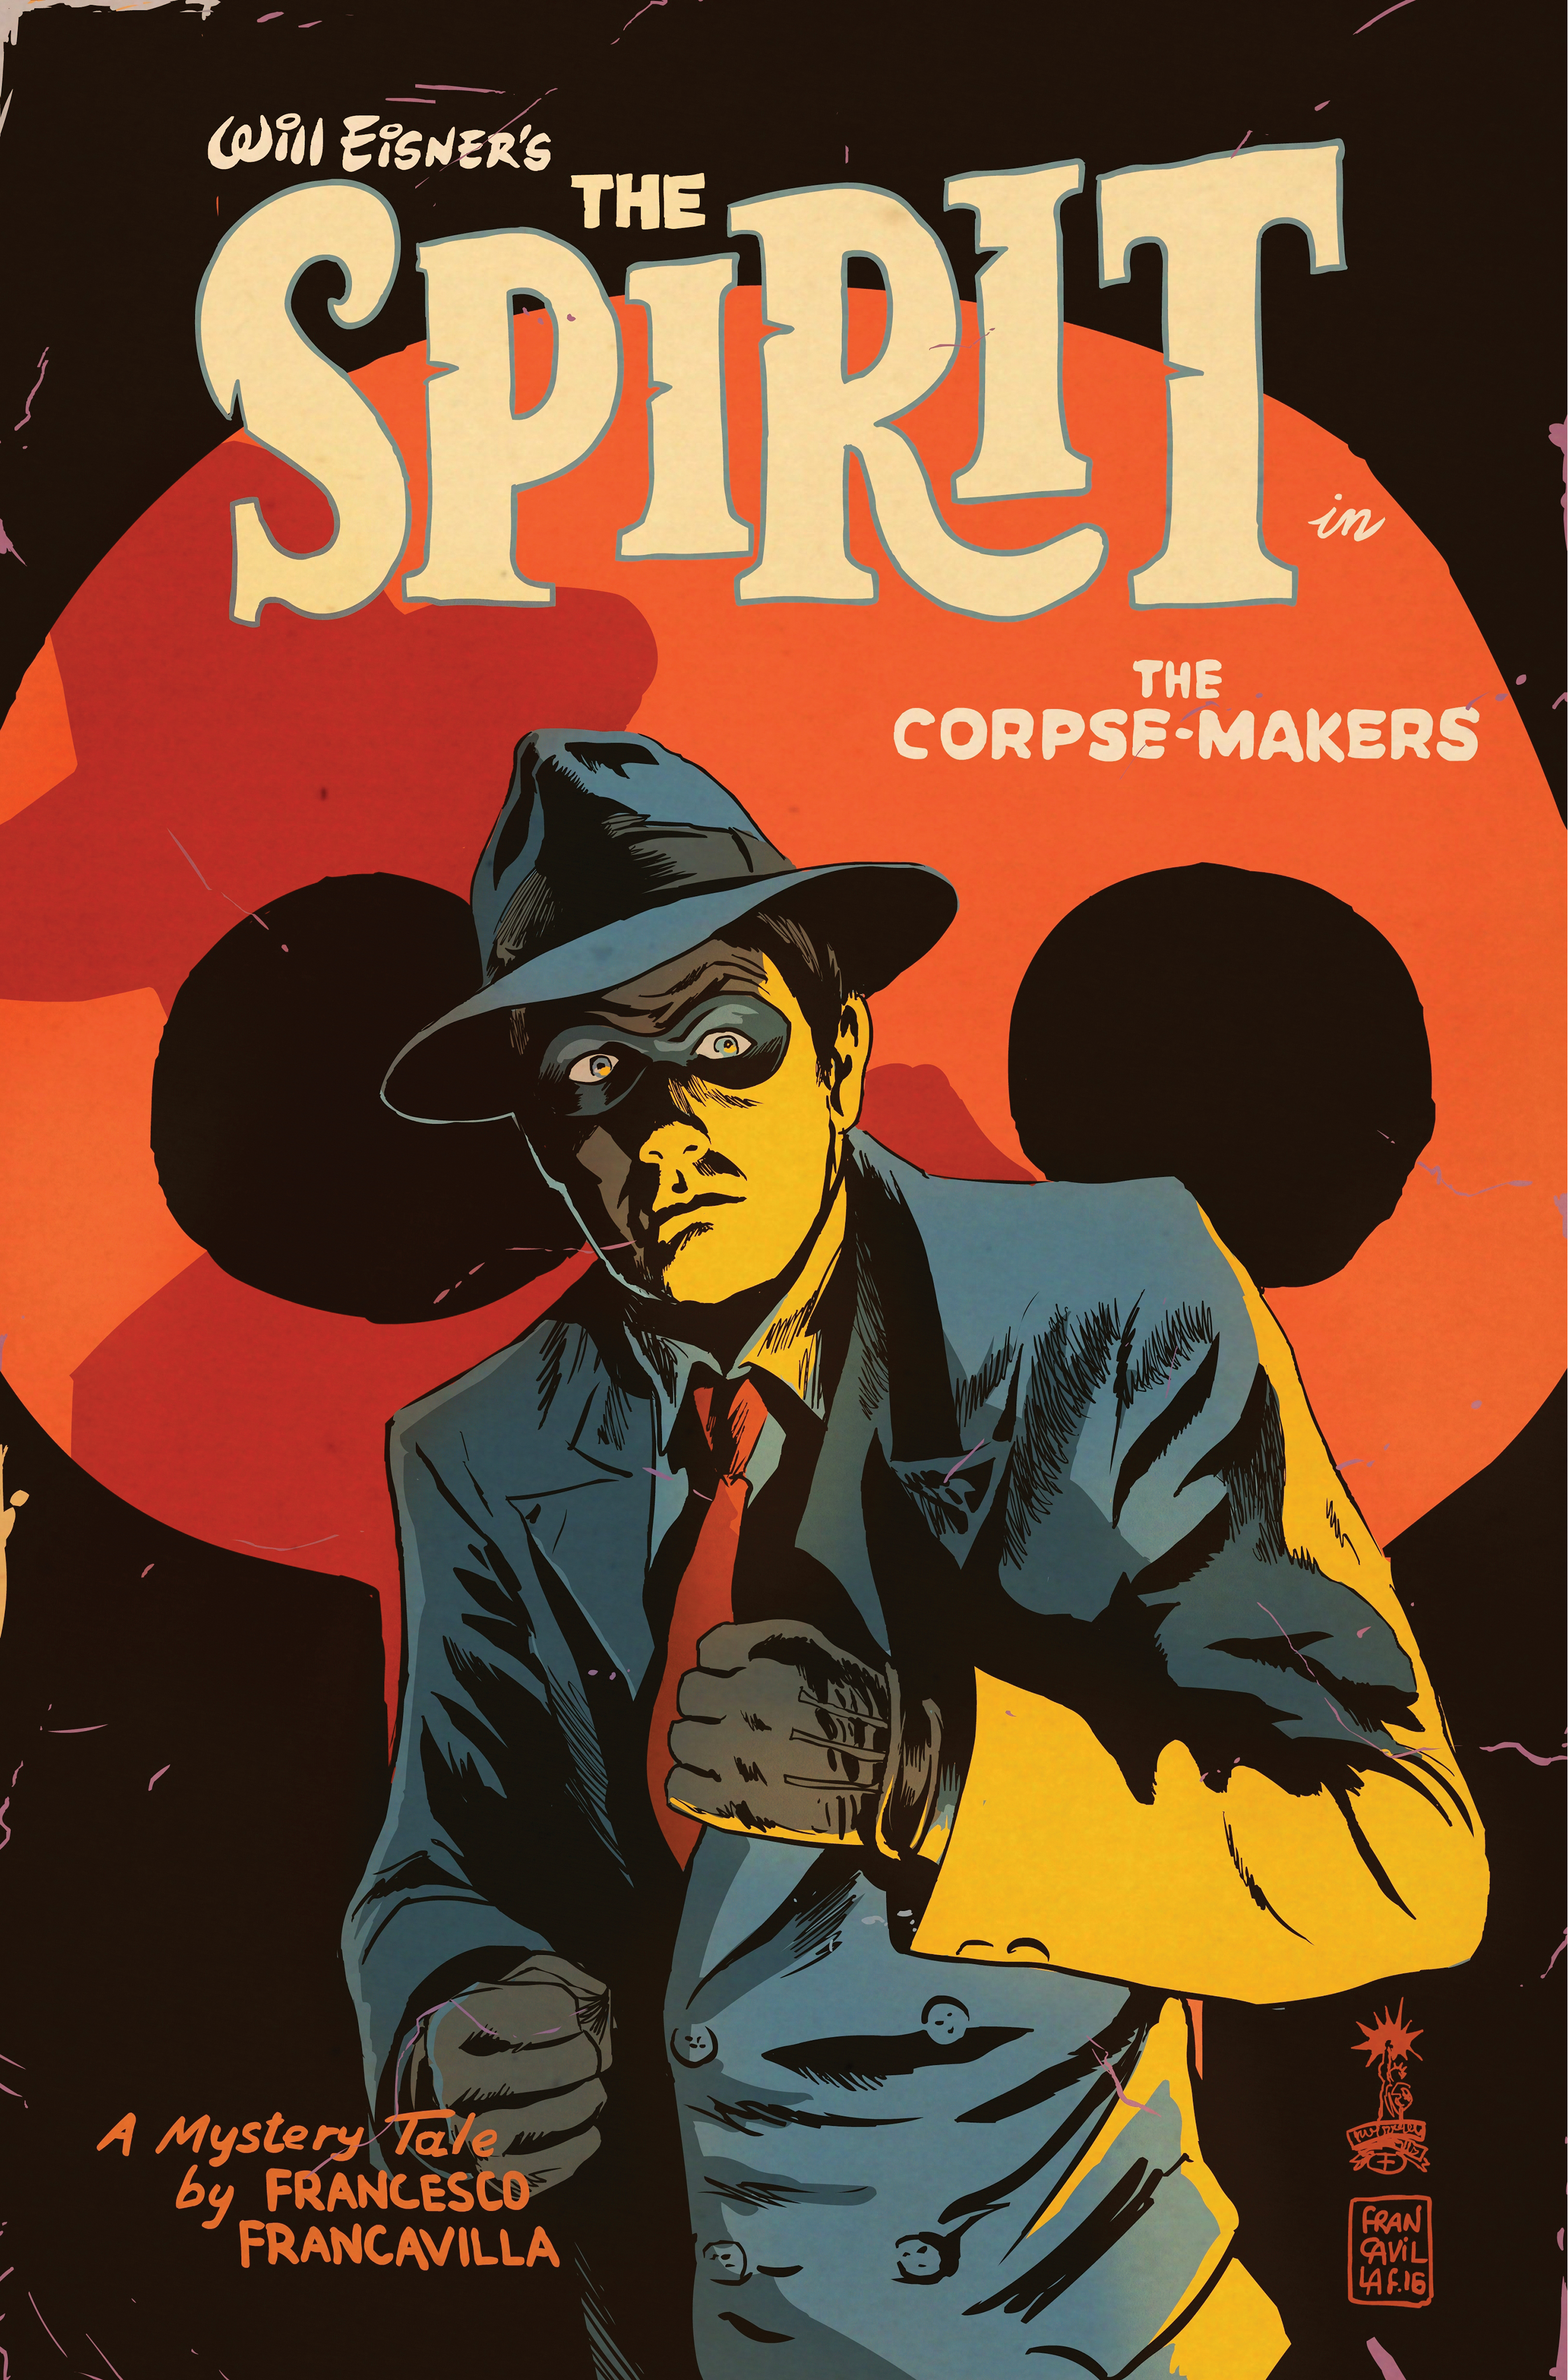 NYCC ANNOUNCEMENT: PULP COMICS SUPERSTAR FRANCESCO FRANCAVILLA WRITES AND DRAWS WILL EISNER'S THE SPIRIT